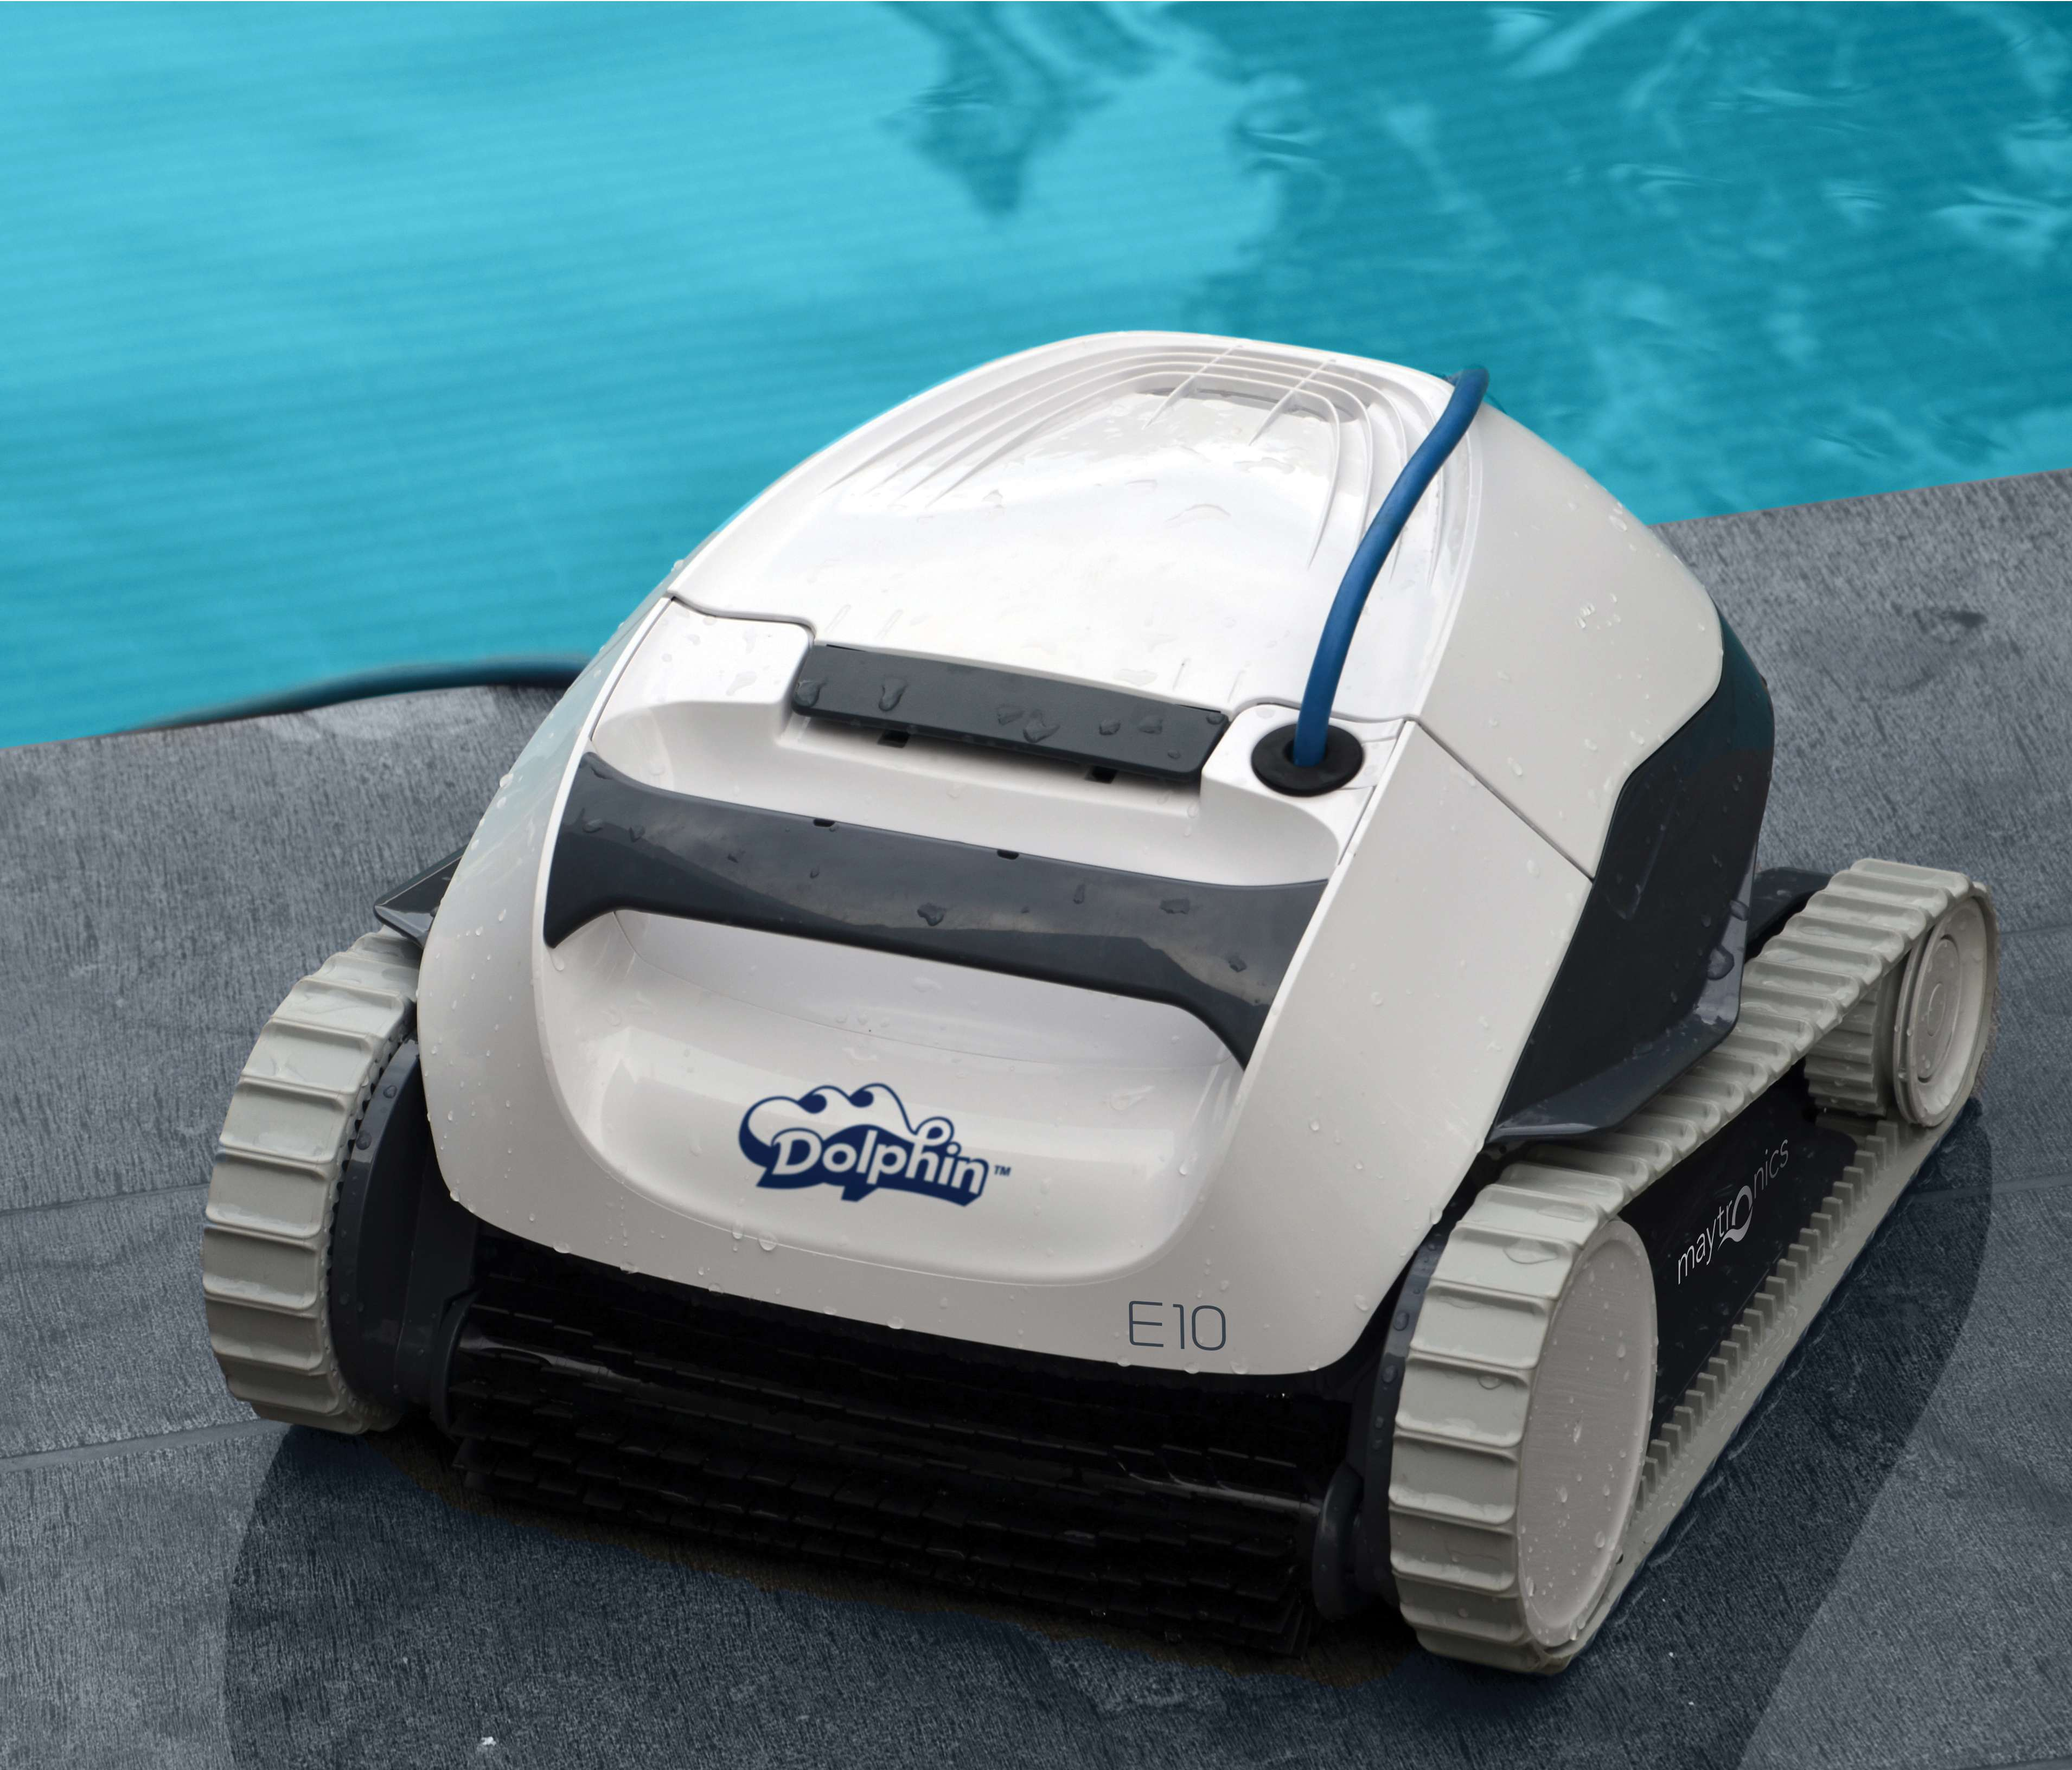 Dolphin e10 robot pulitore piscine maytronics for Robot piscina dolphin